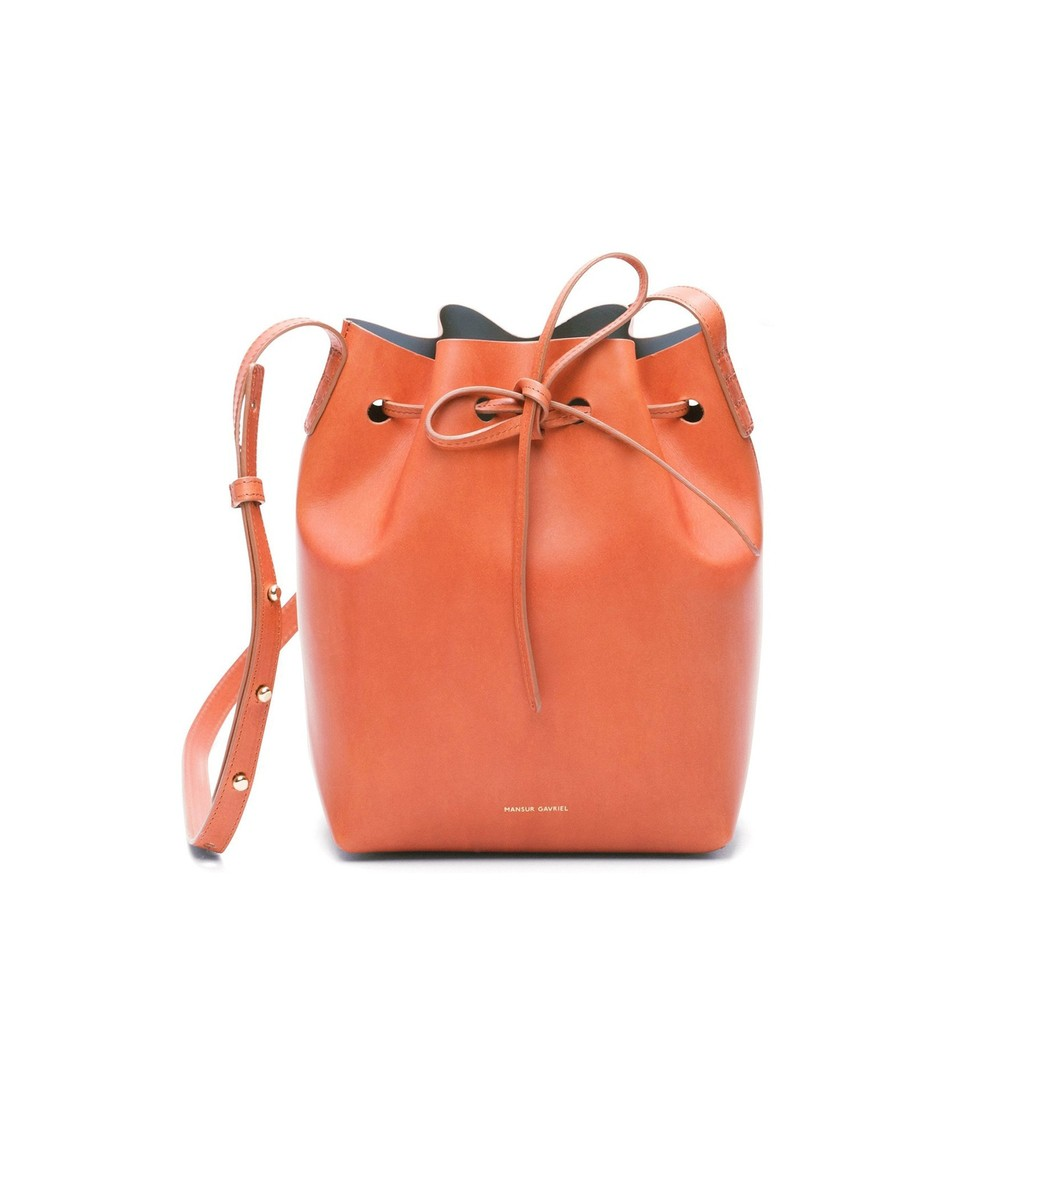 MANSUR GAVRIEL Brandy/Avion Mini Bucket Bag